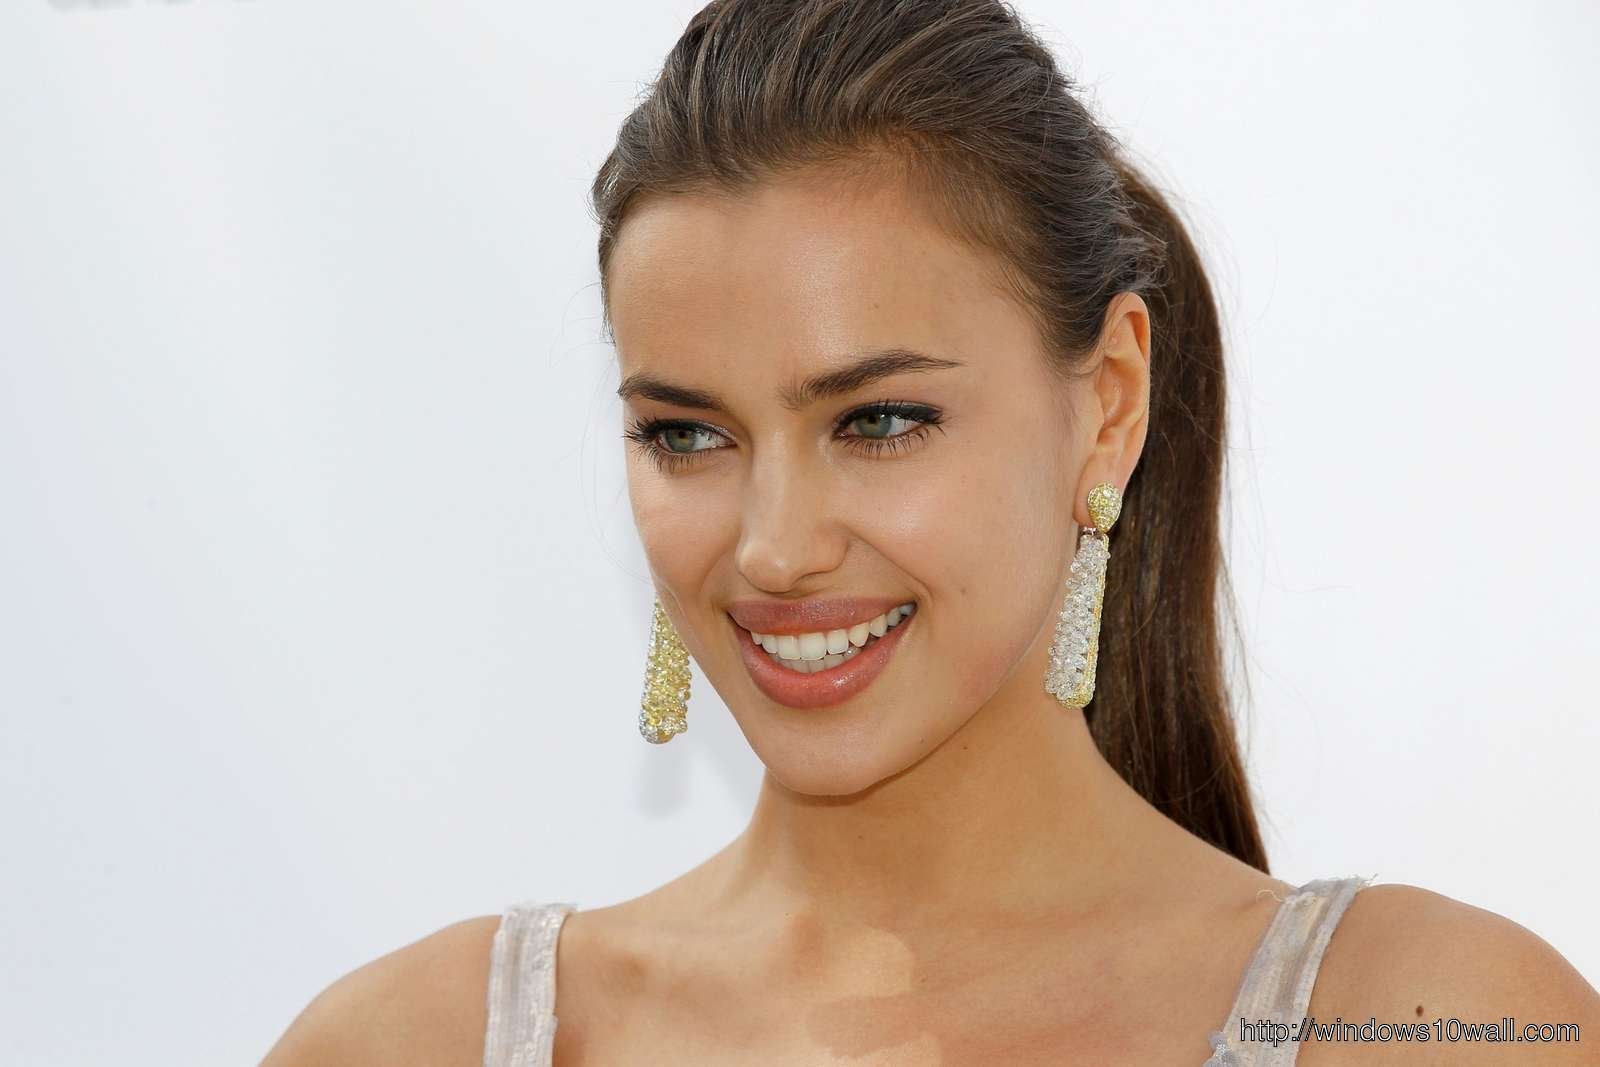 Irina Shayk Smiling Background Wallpaper